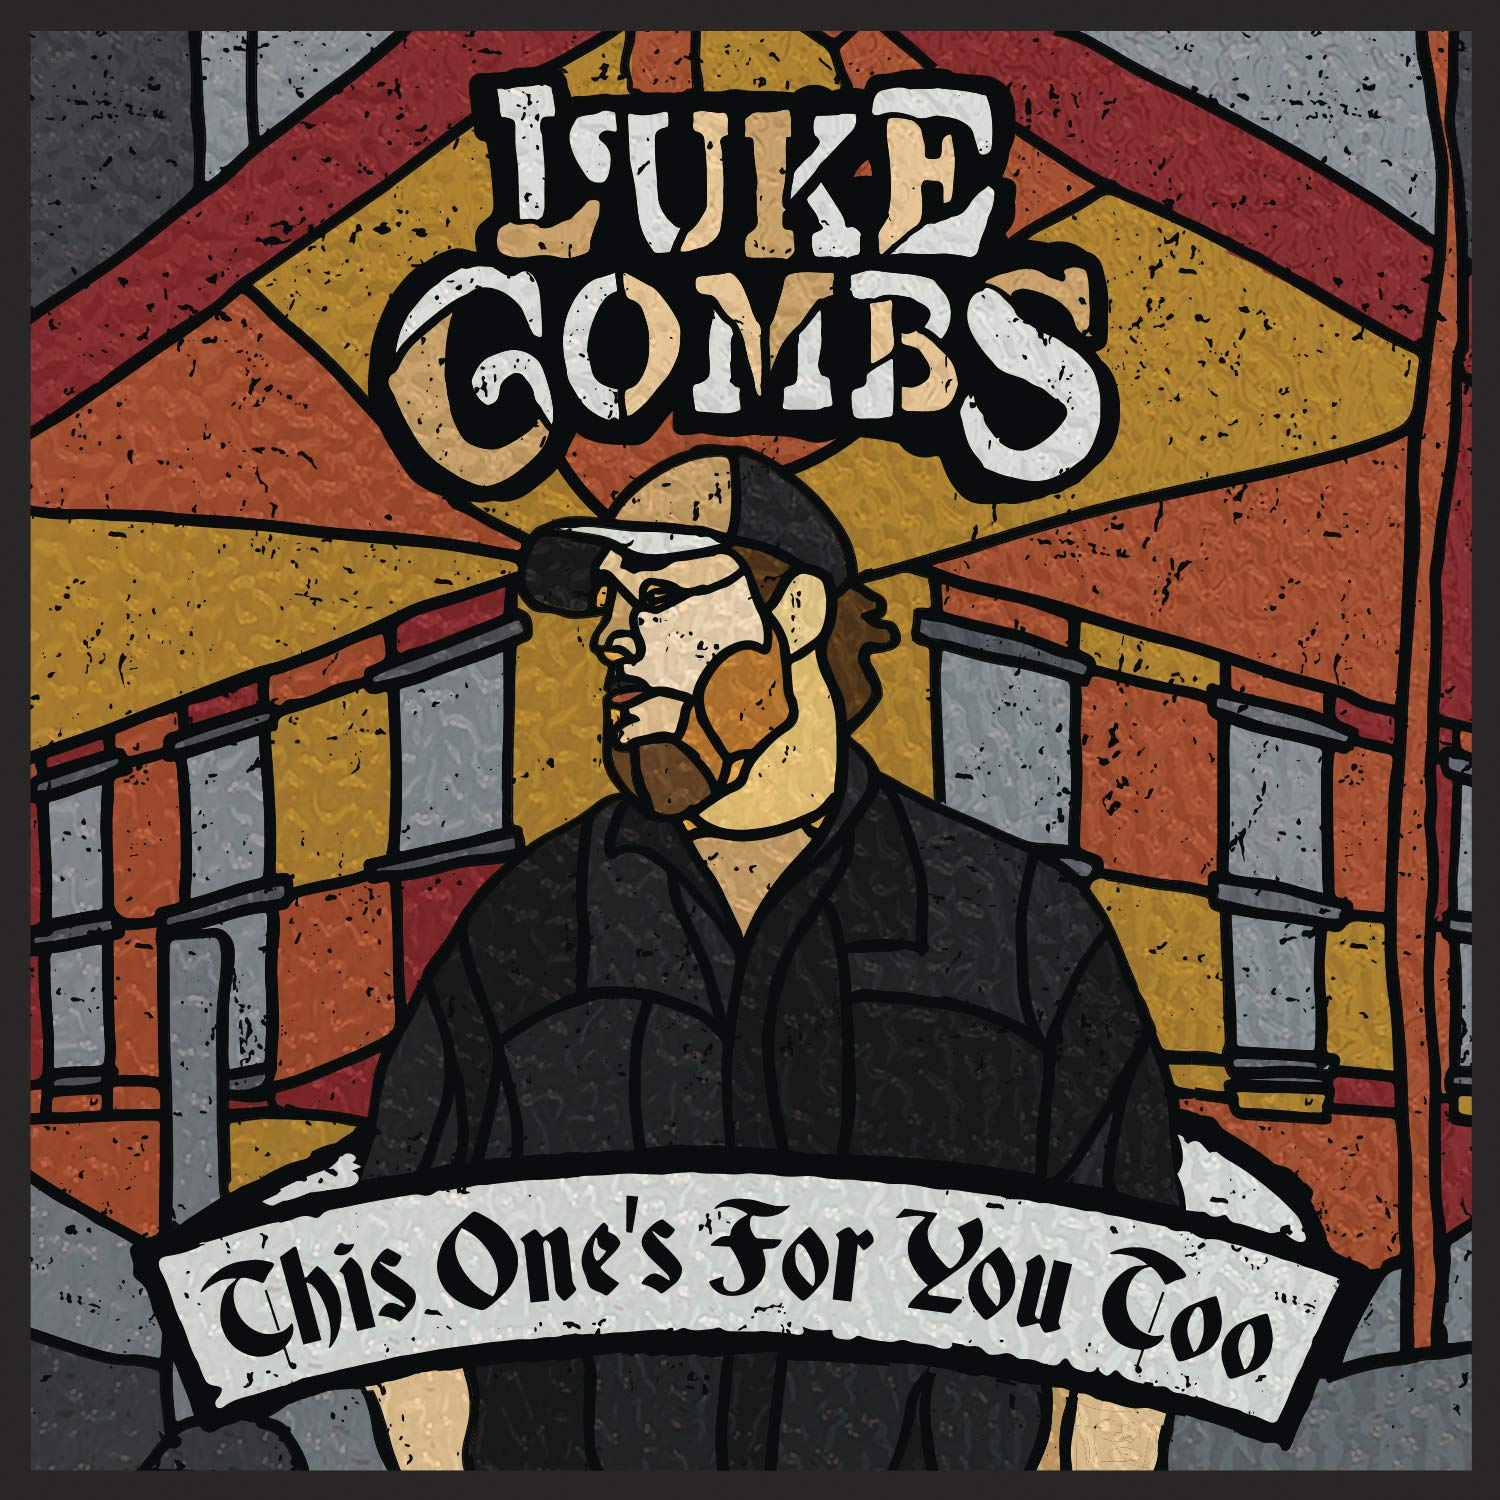 Luke Combs This One S For You Too Deluxe Edition Amazon Com Music